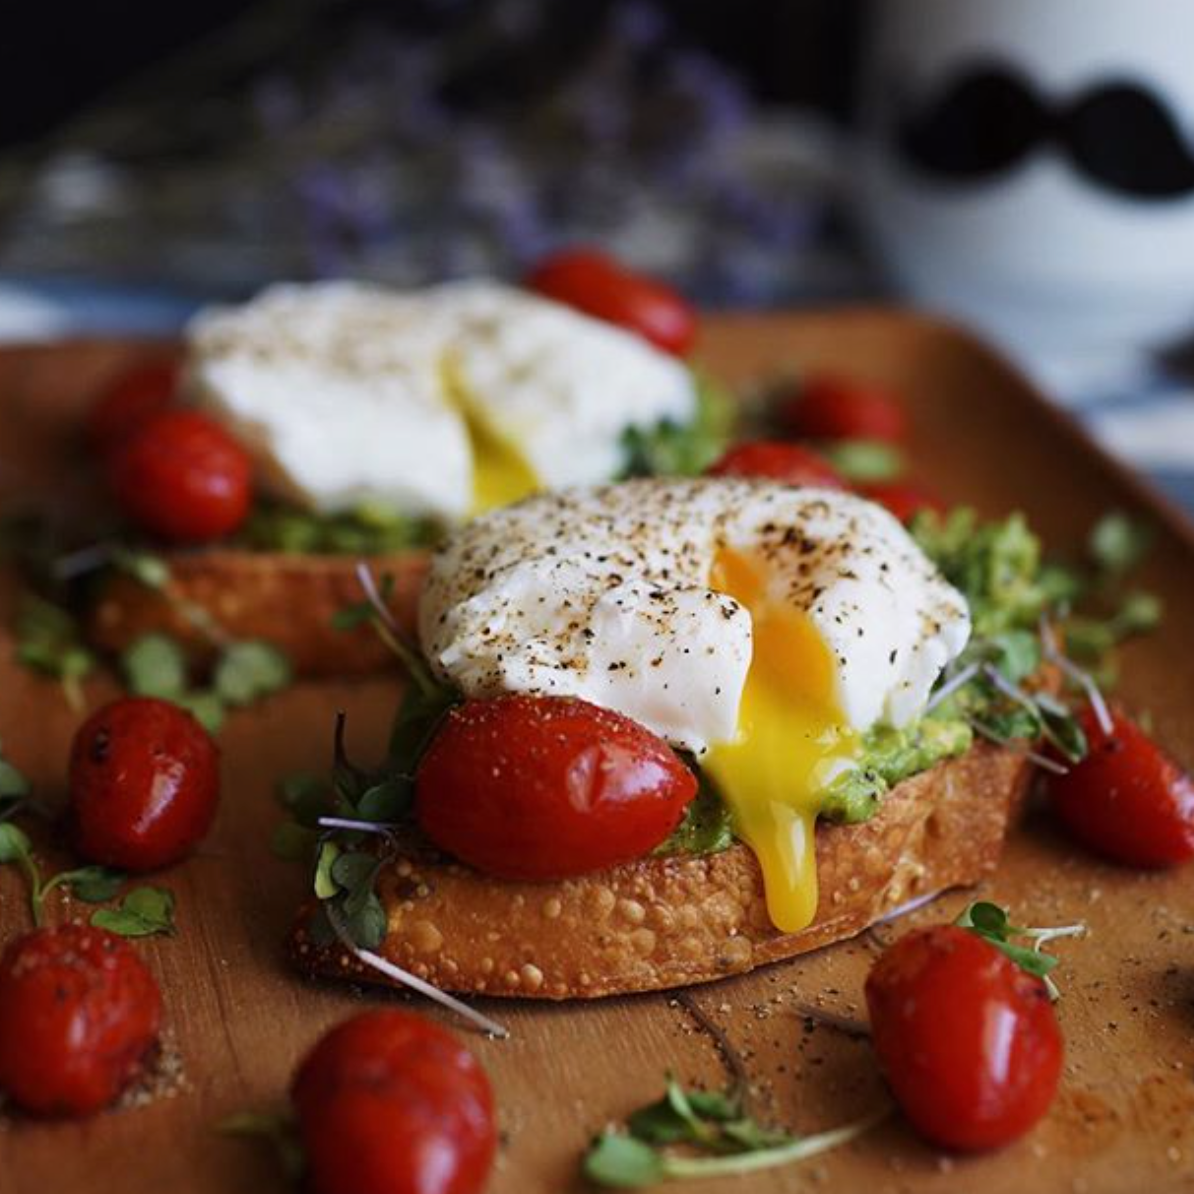 Poached Eggs with Tomato, Avocado & Microgreens -